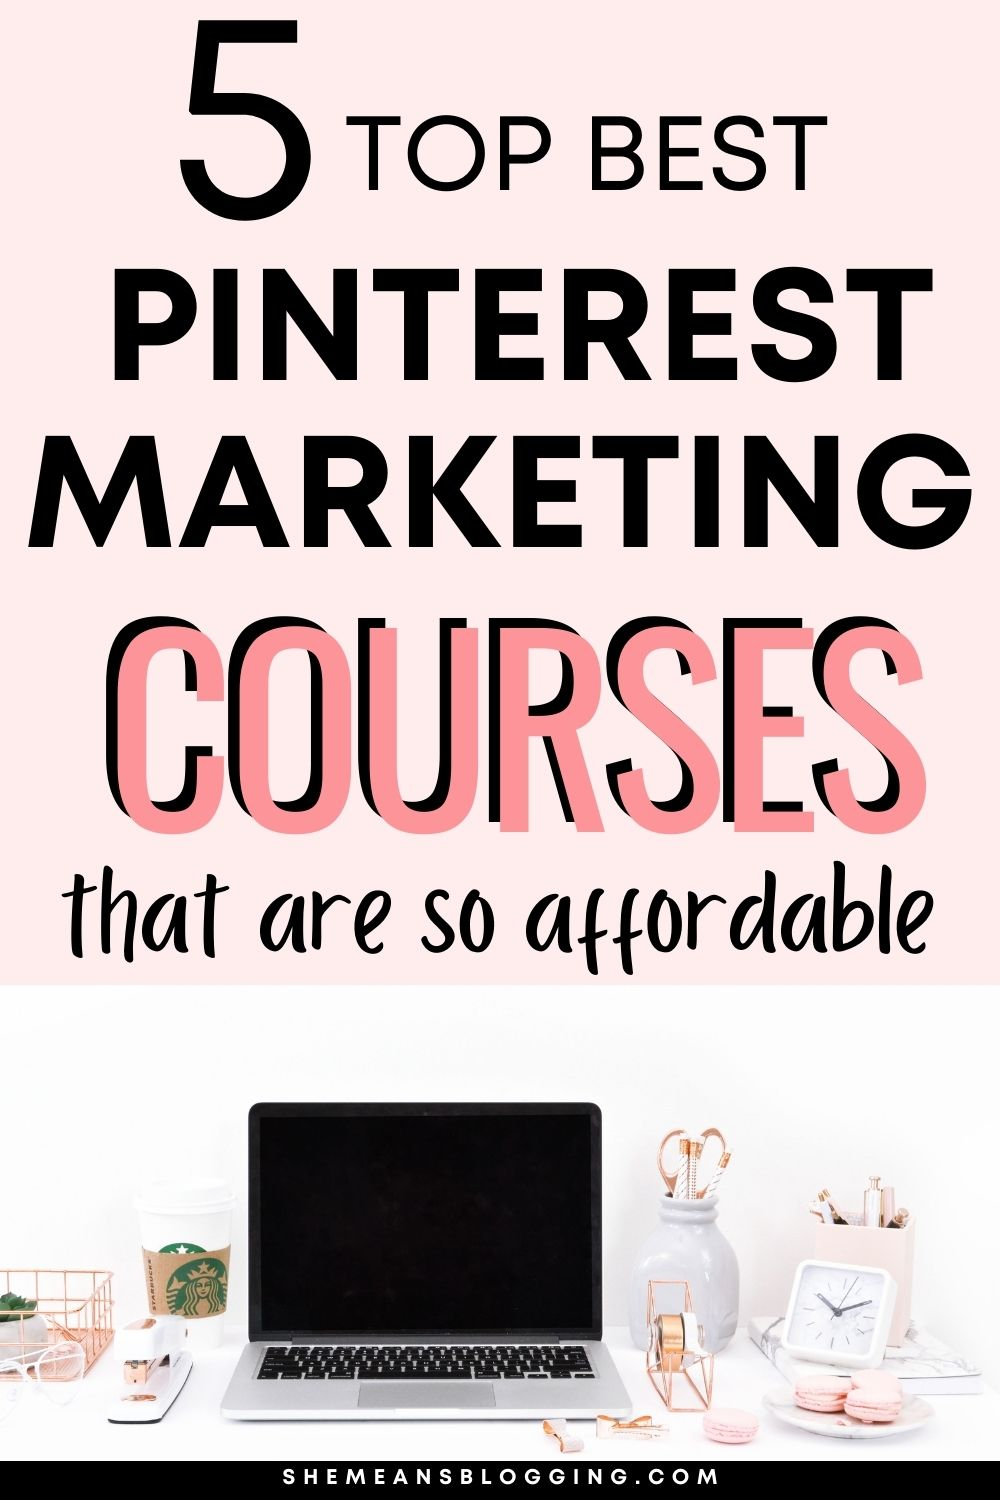 Best Pinterest Marketing Courses. If you are trying to grow on Pinterest then try out these highly recommended Pinterest courses! And, these are super affordable for the value inside. Learn about Pinterest marketing, pinterest tips and Pinterest strategy. #pinteresttips #pinterestmarketing